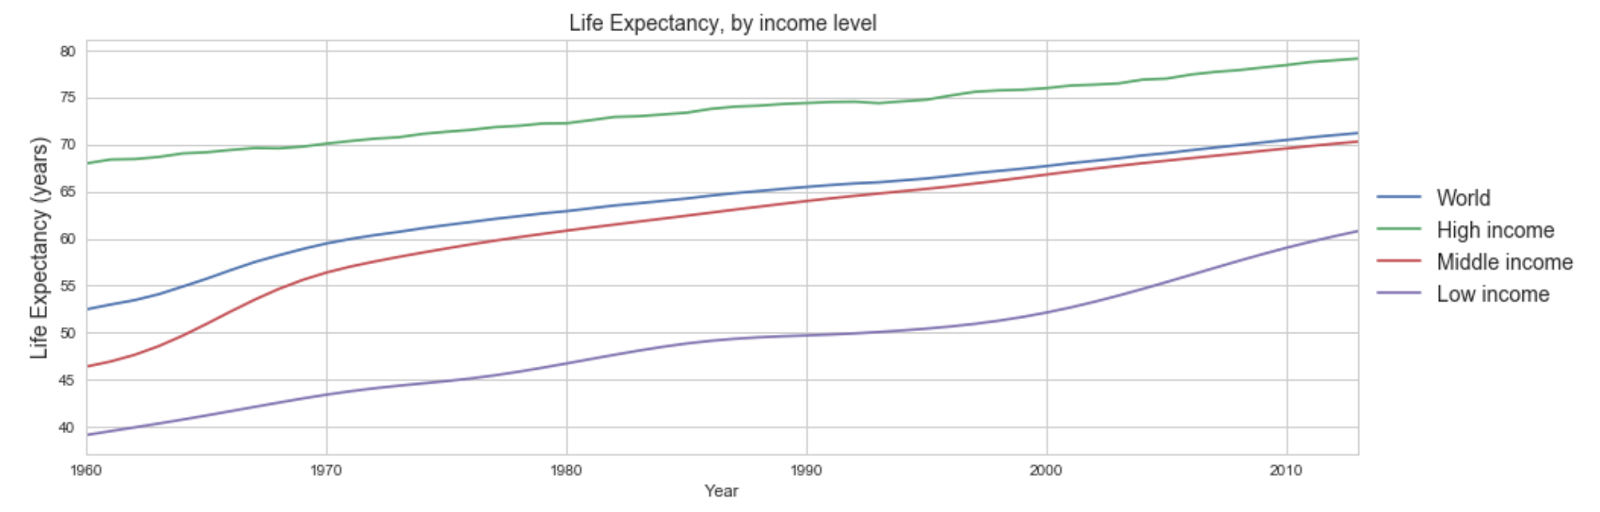 life expectancy history